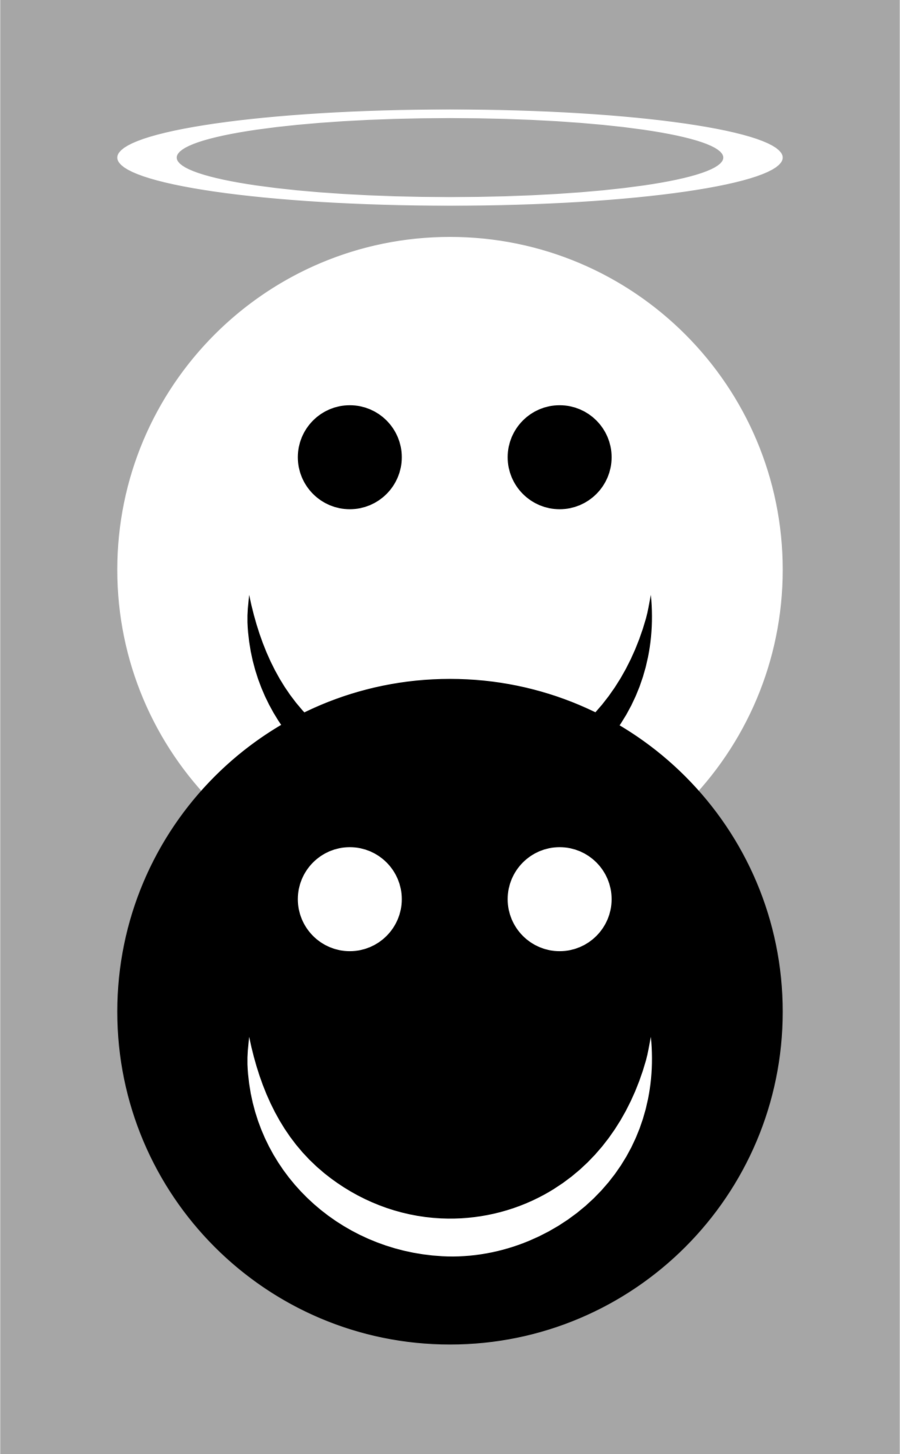 Smiley Face Background clipart - Face, Black, Smile